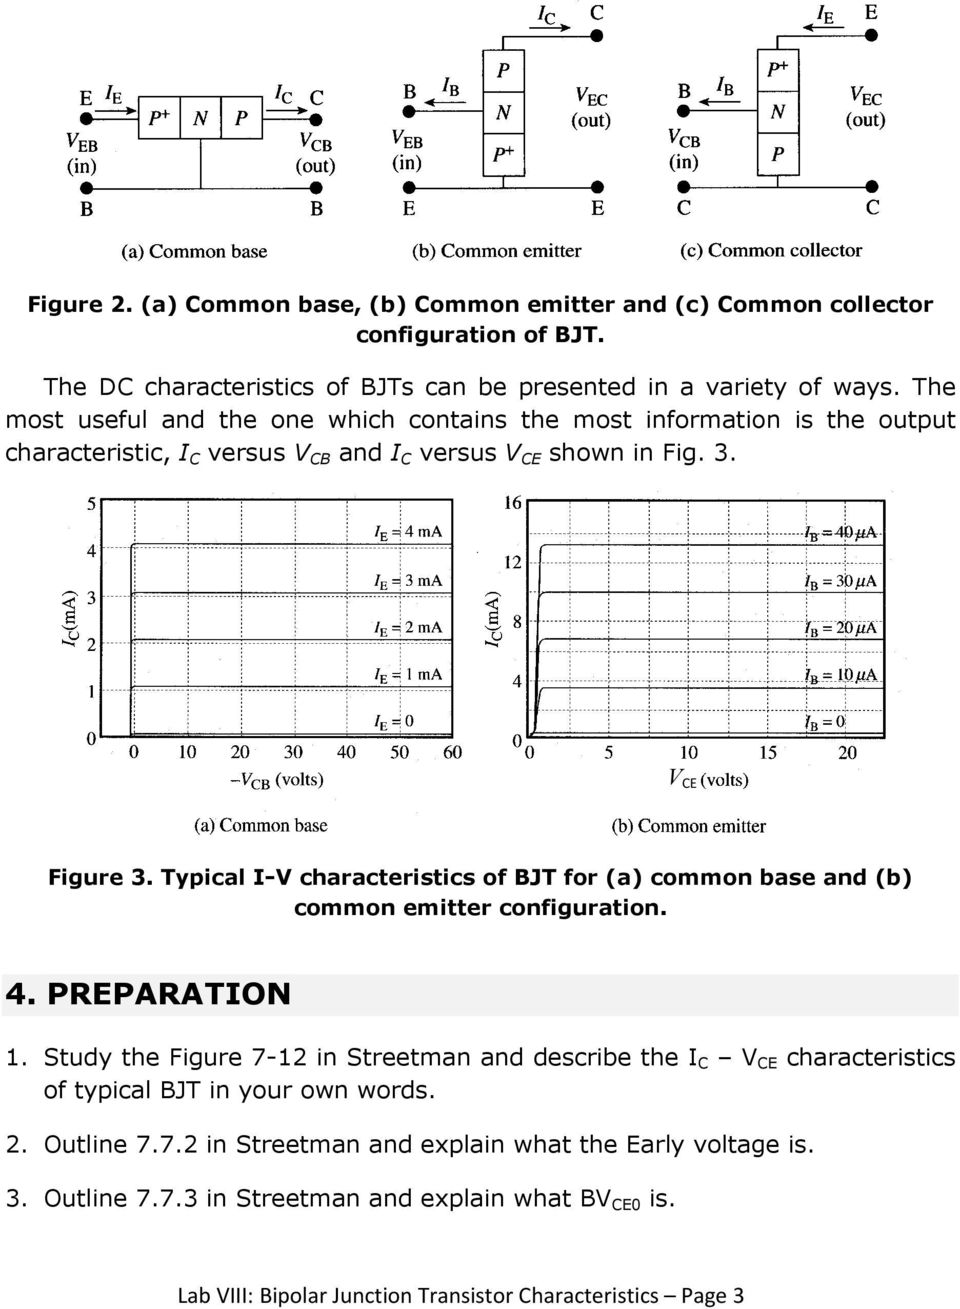 Lab Viii Bipolar Junction Transistor Characteristics Pdf Common Base Amplifier Typical I V Of Bjt For A And B